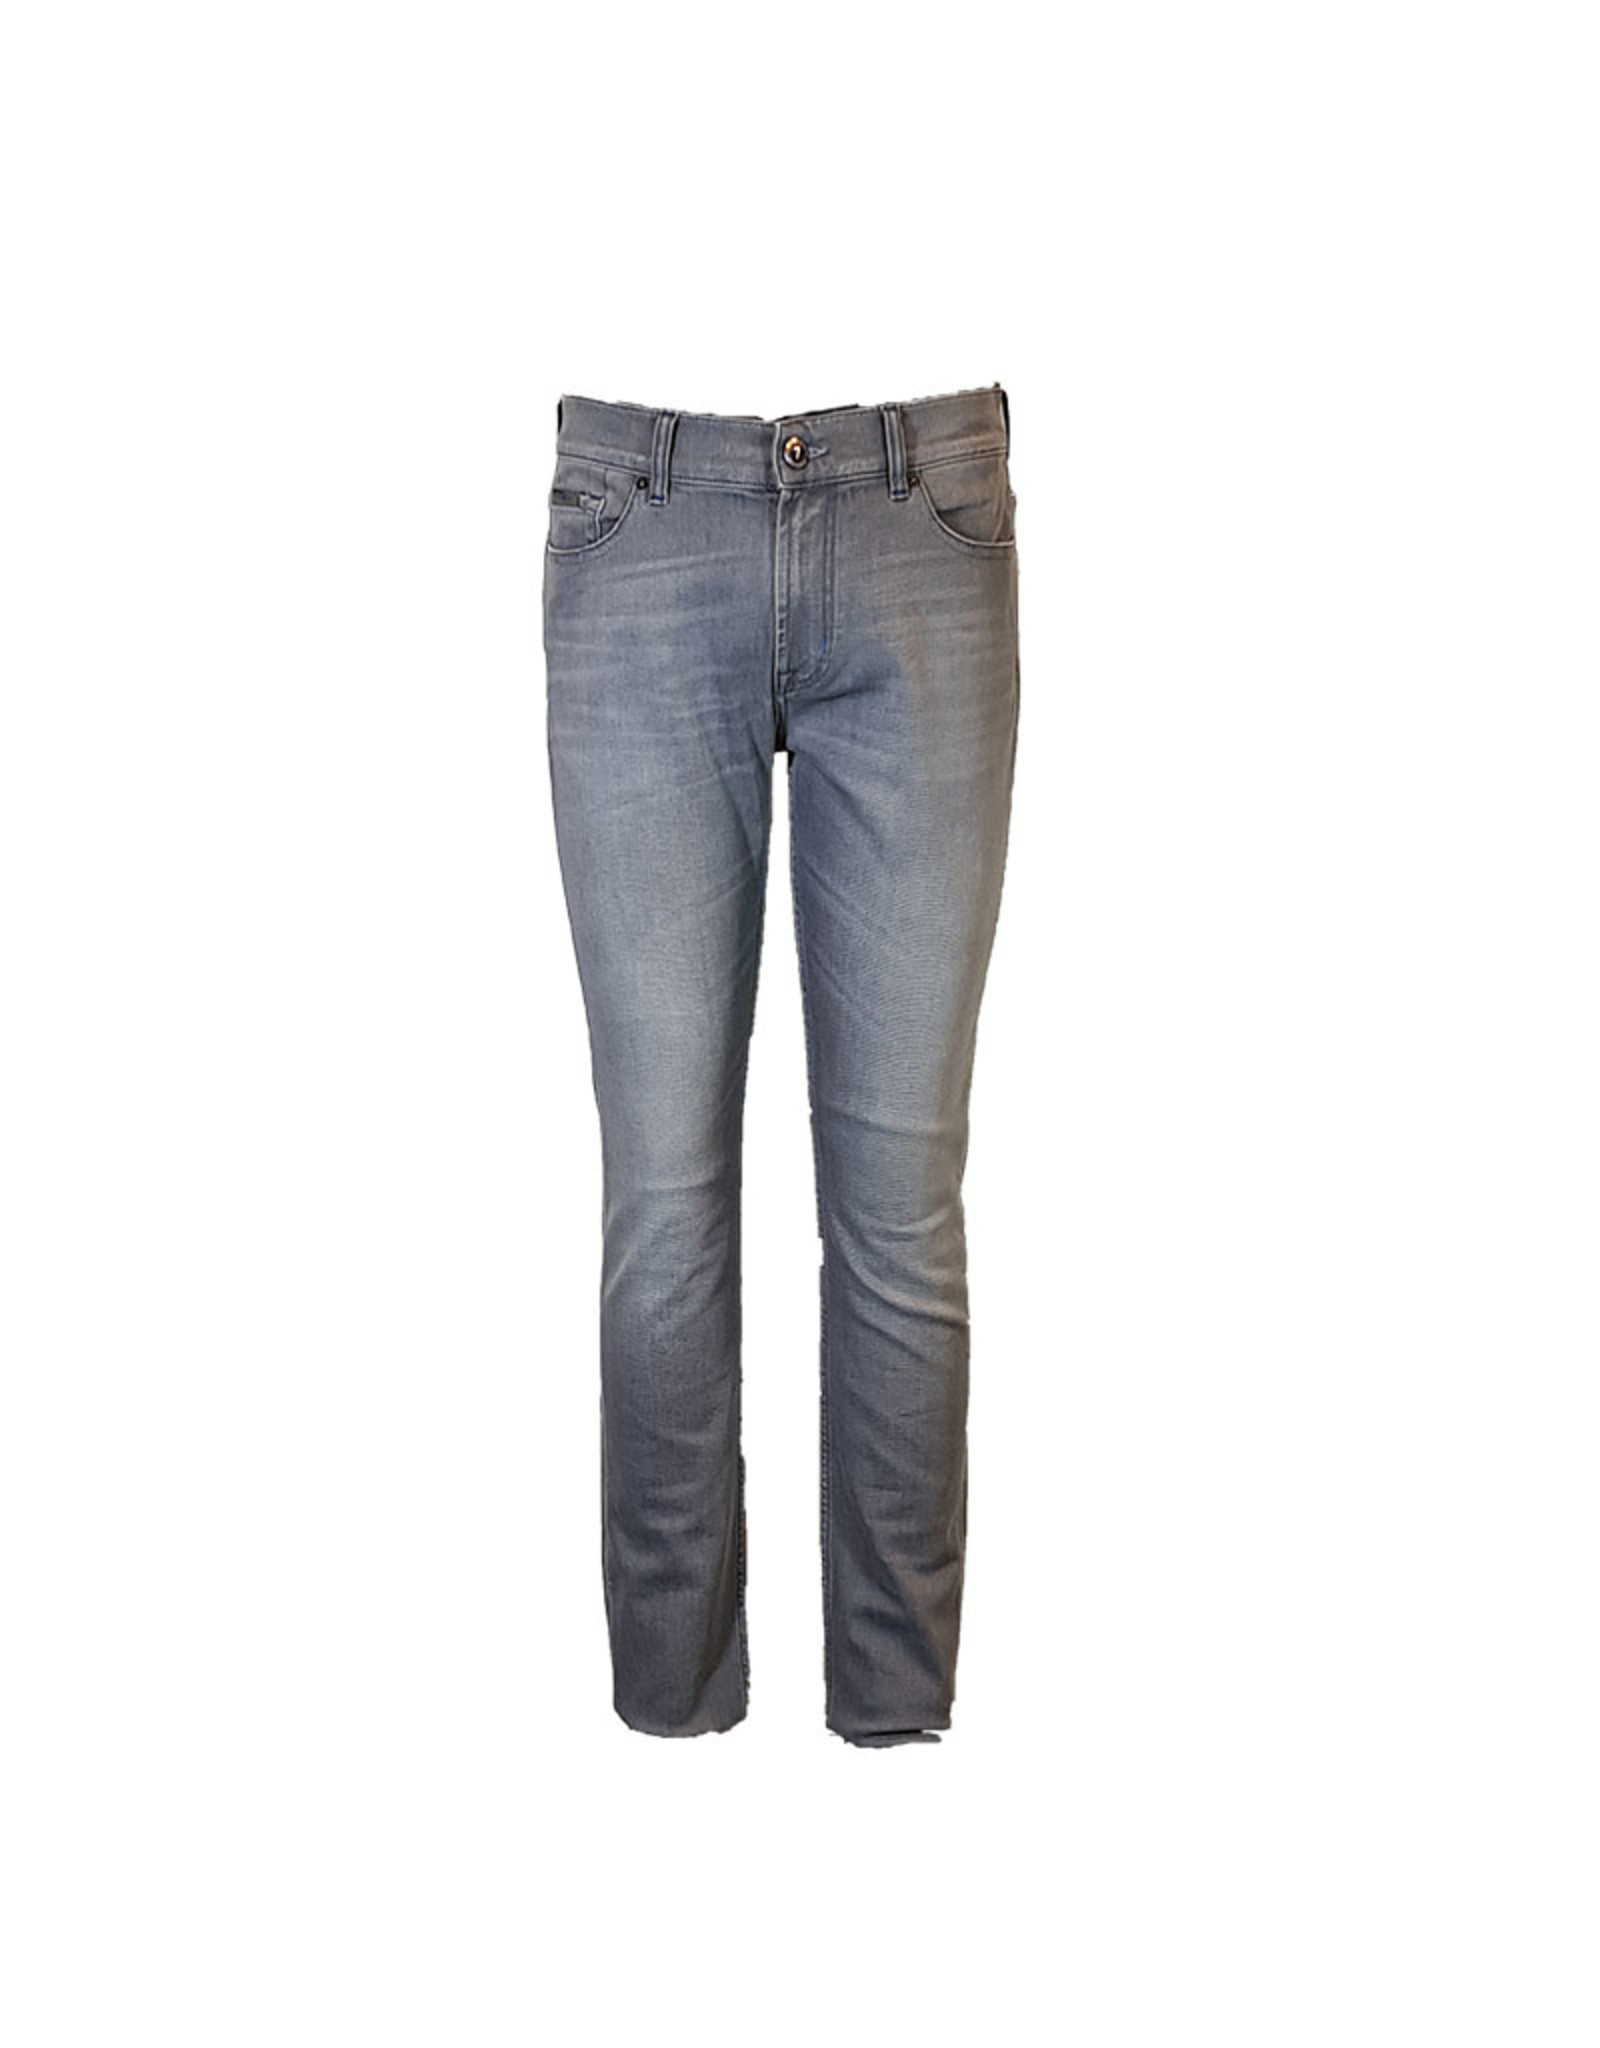 7 For All Mankind 7FAM jeans grijs Ronnie SD4U43EDG